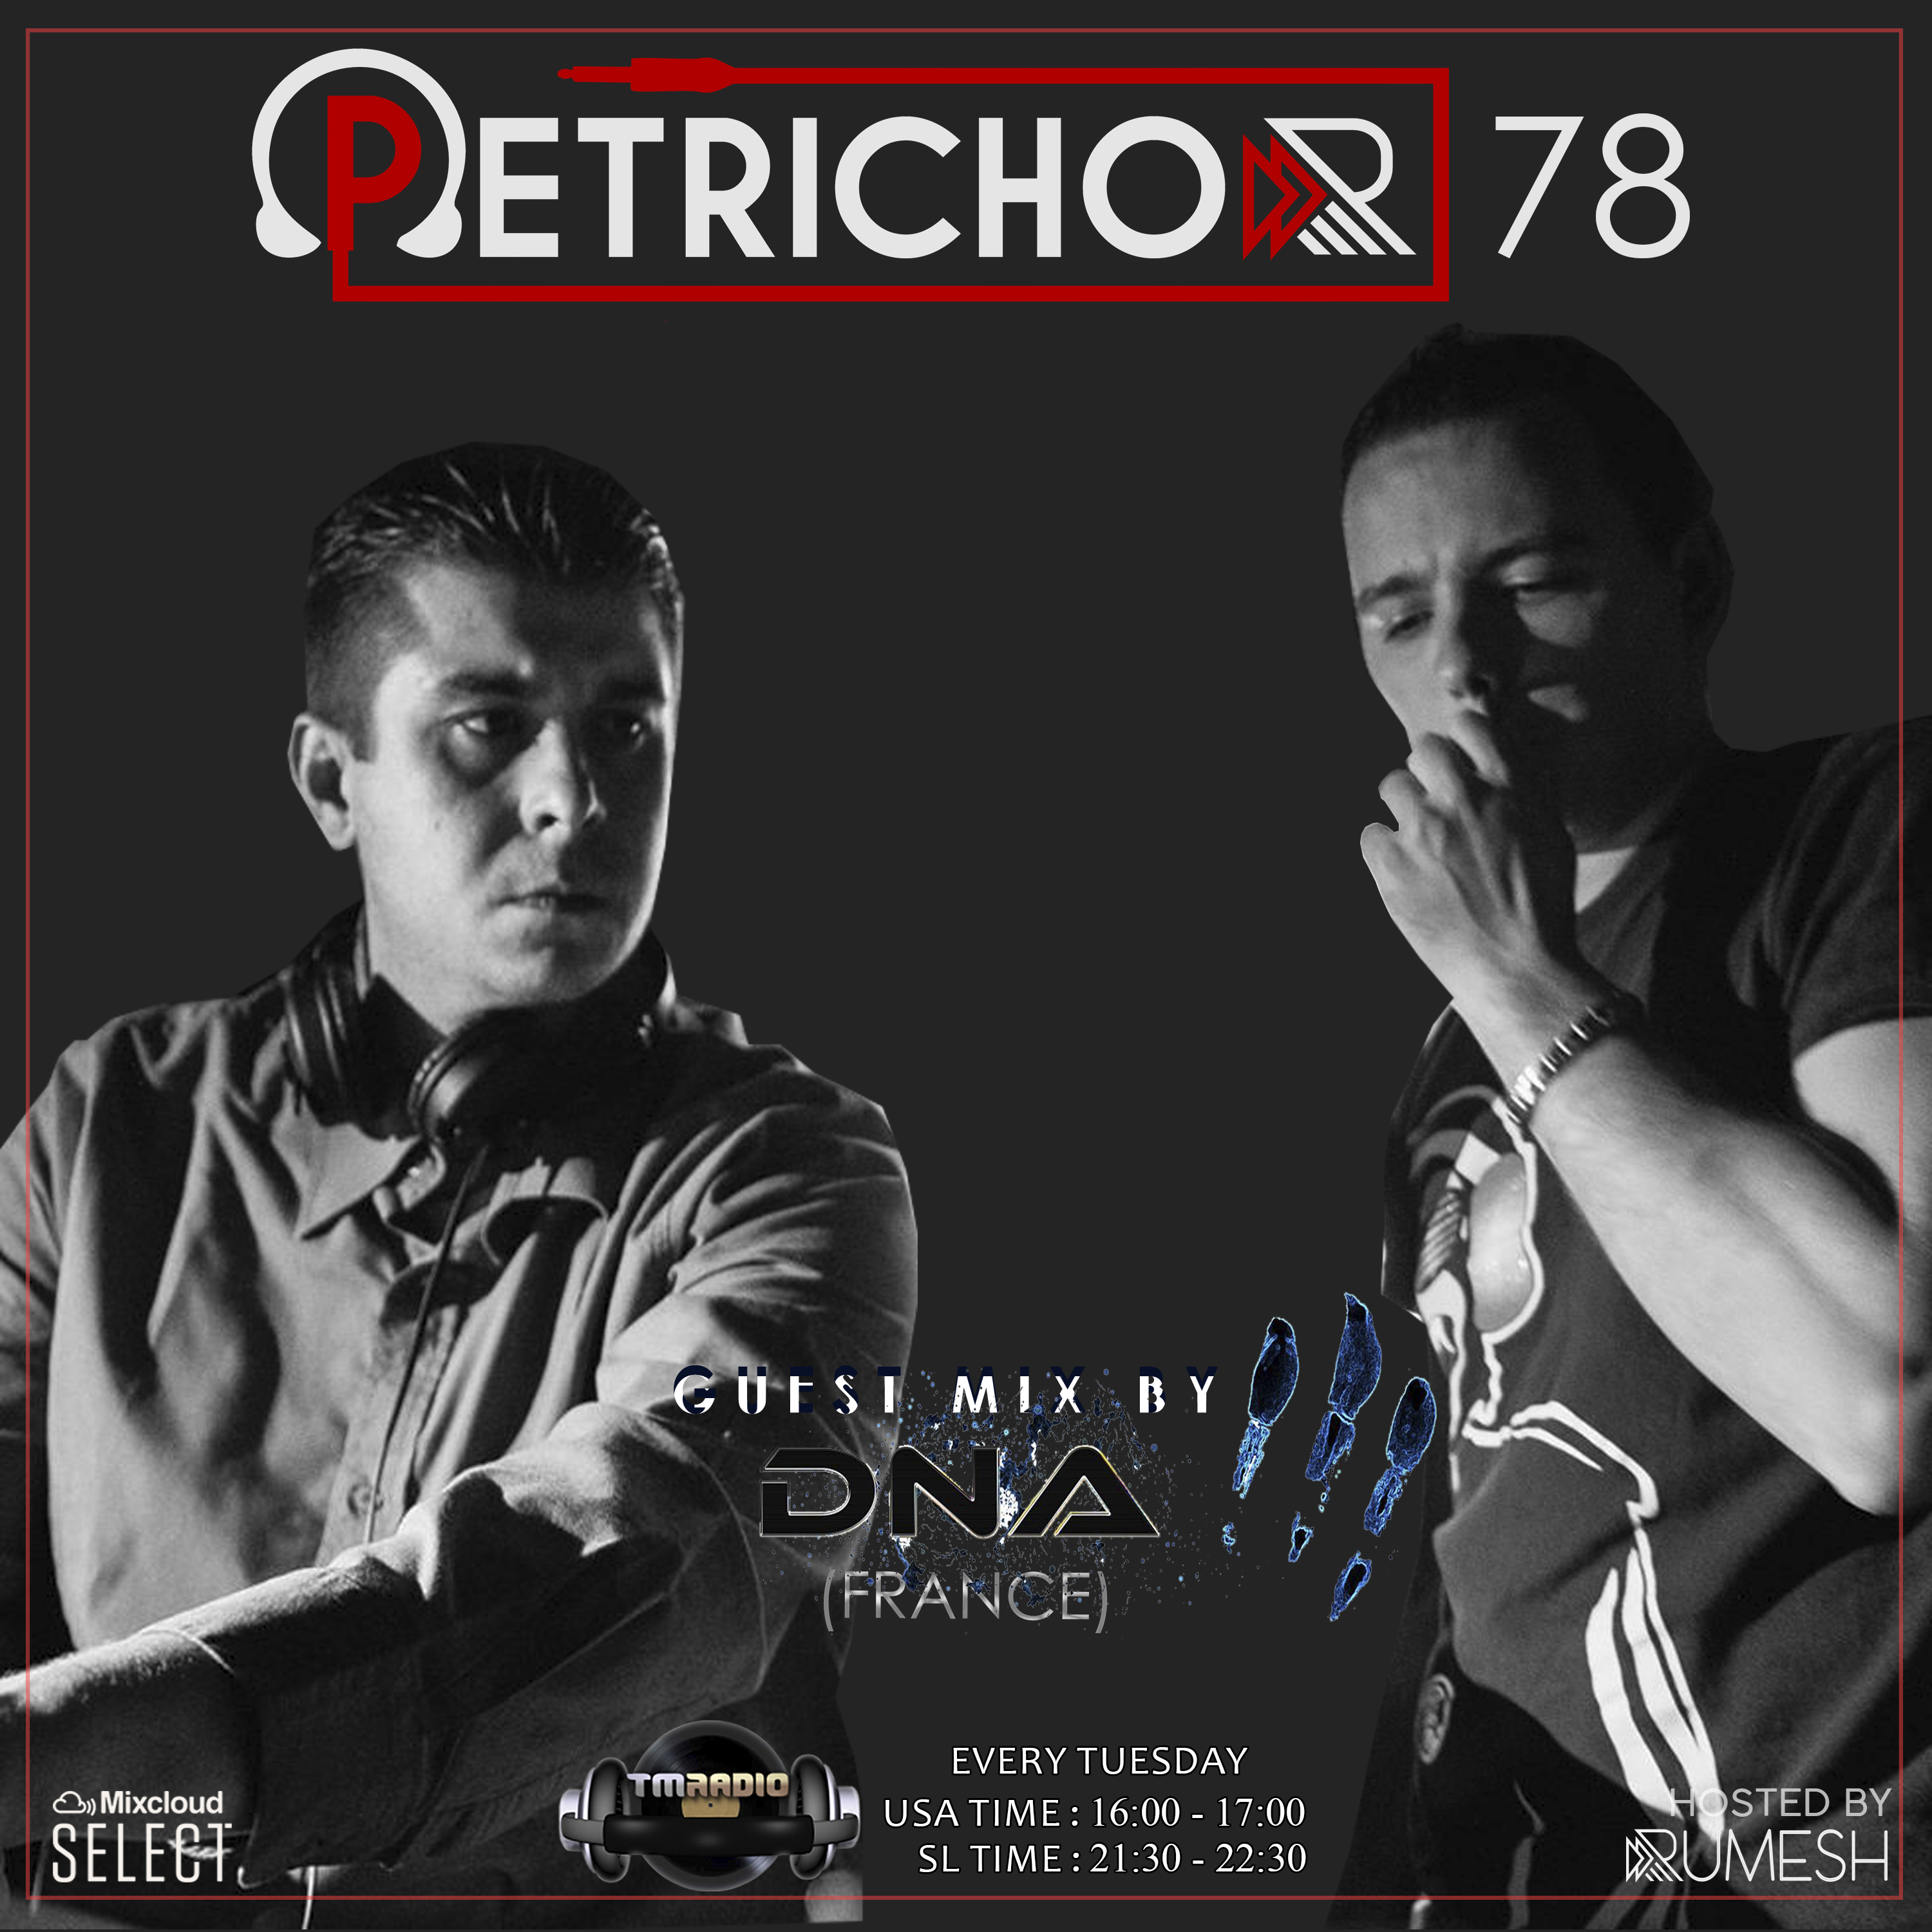 Petrichor :: Petrichor 78 Guest Mix by DNA (France) (aired on May 5th, 2020) banner logo